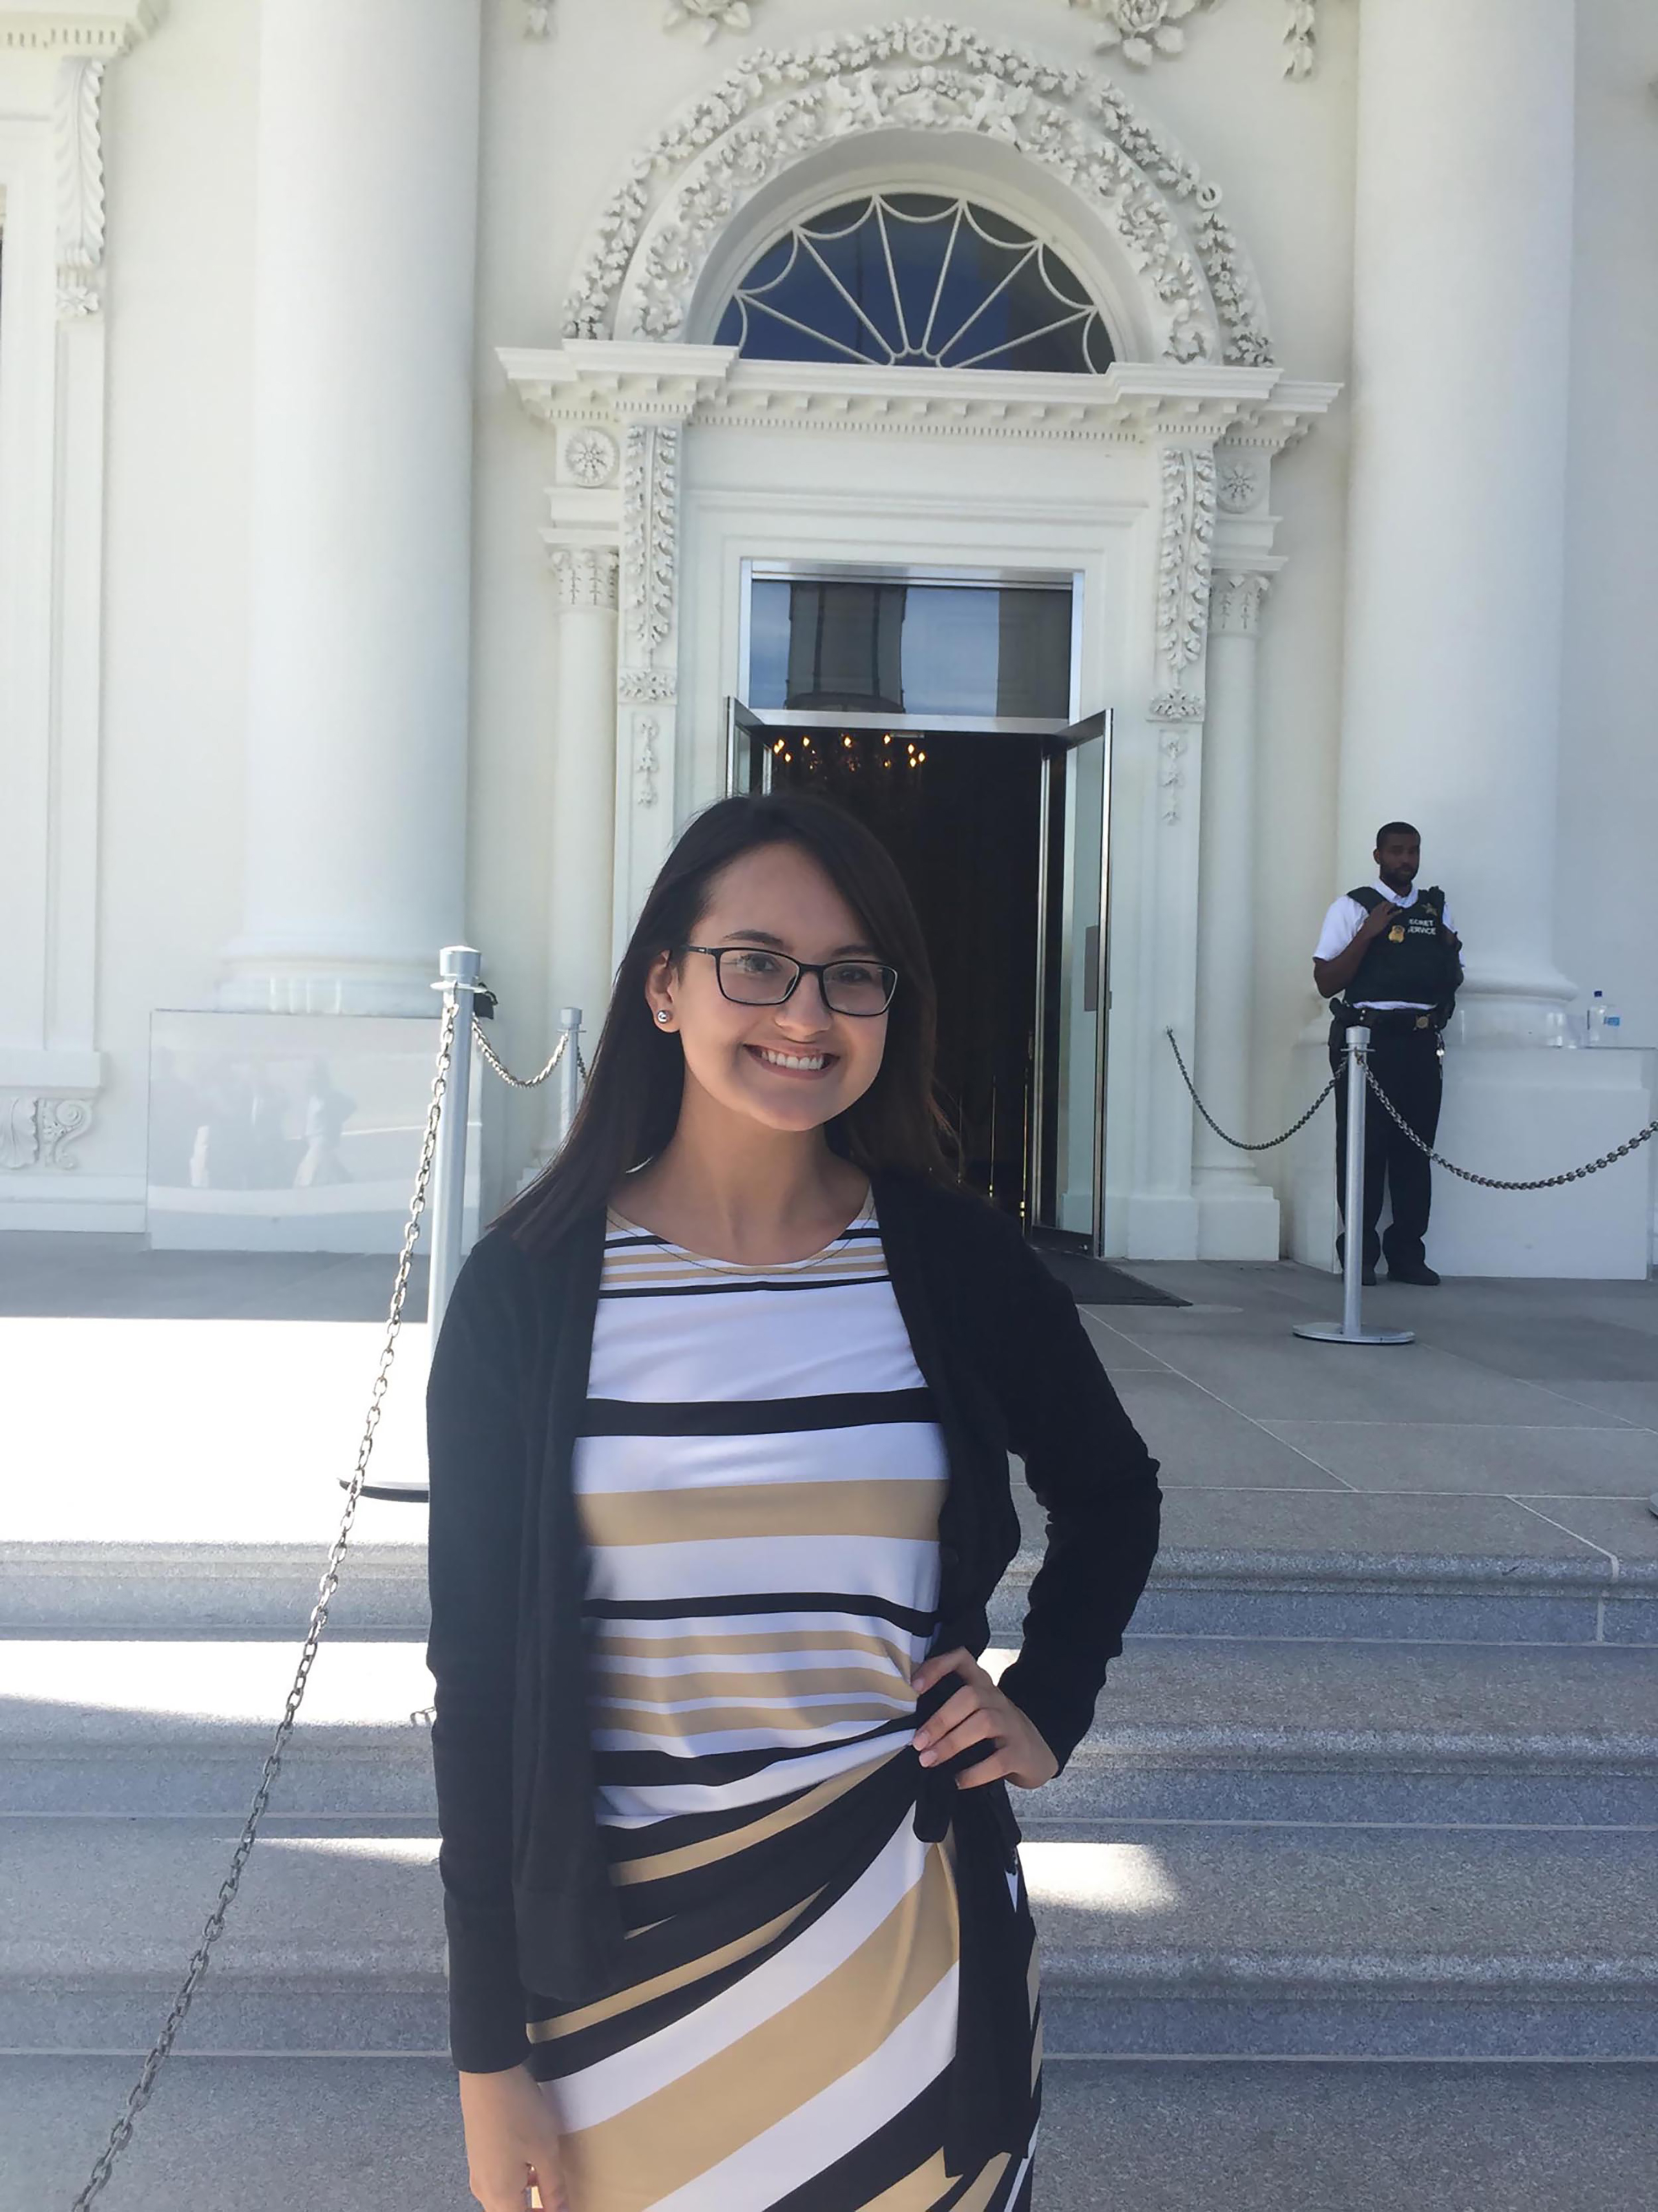 My internship at the White House